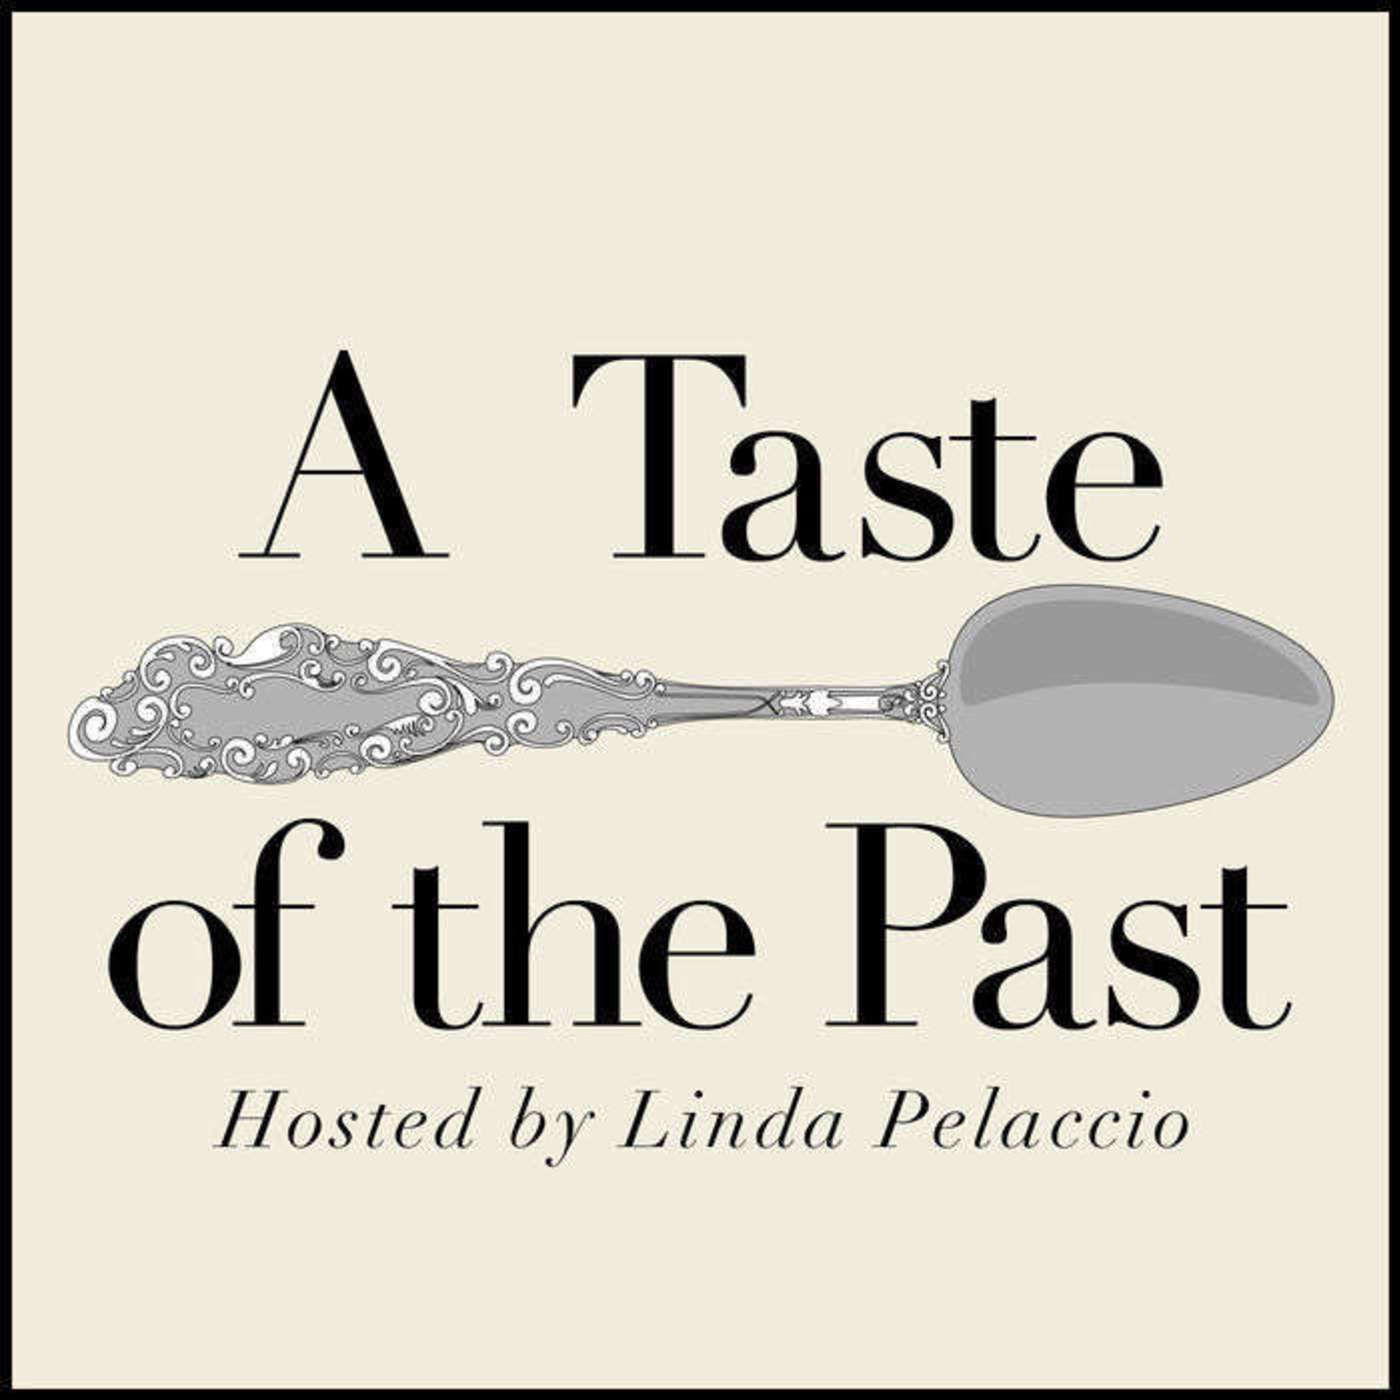 Episode 218: New Orleans Food History